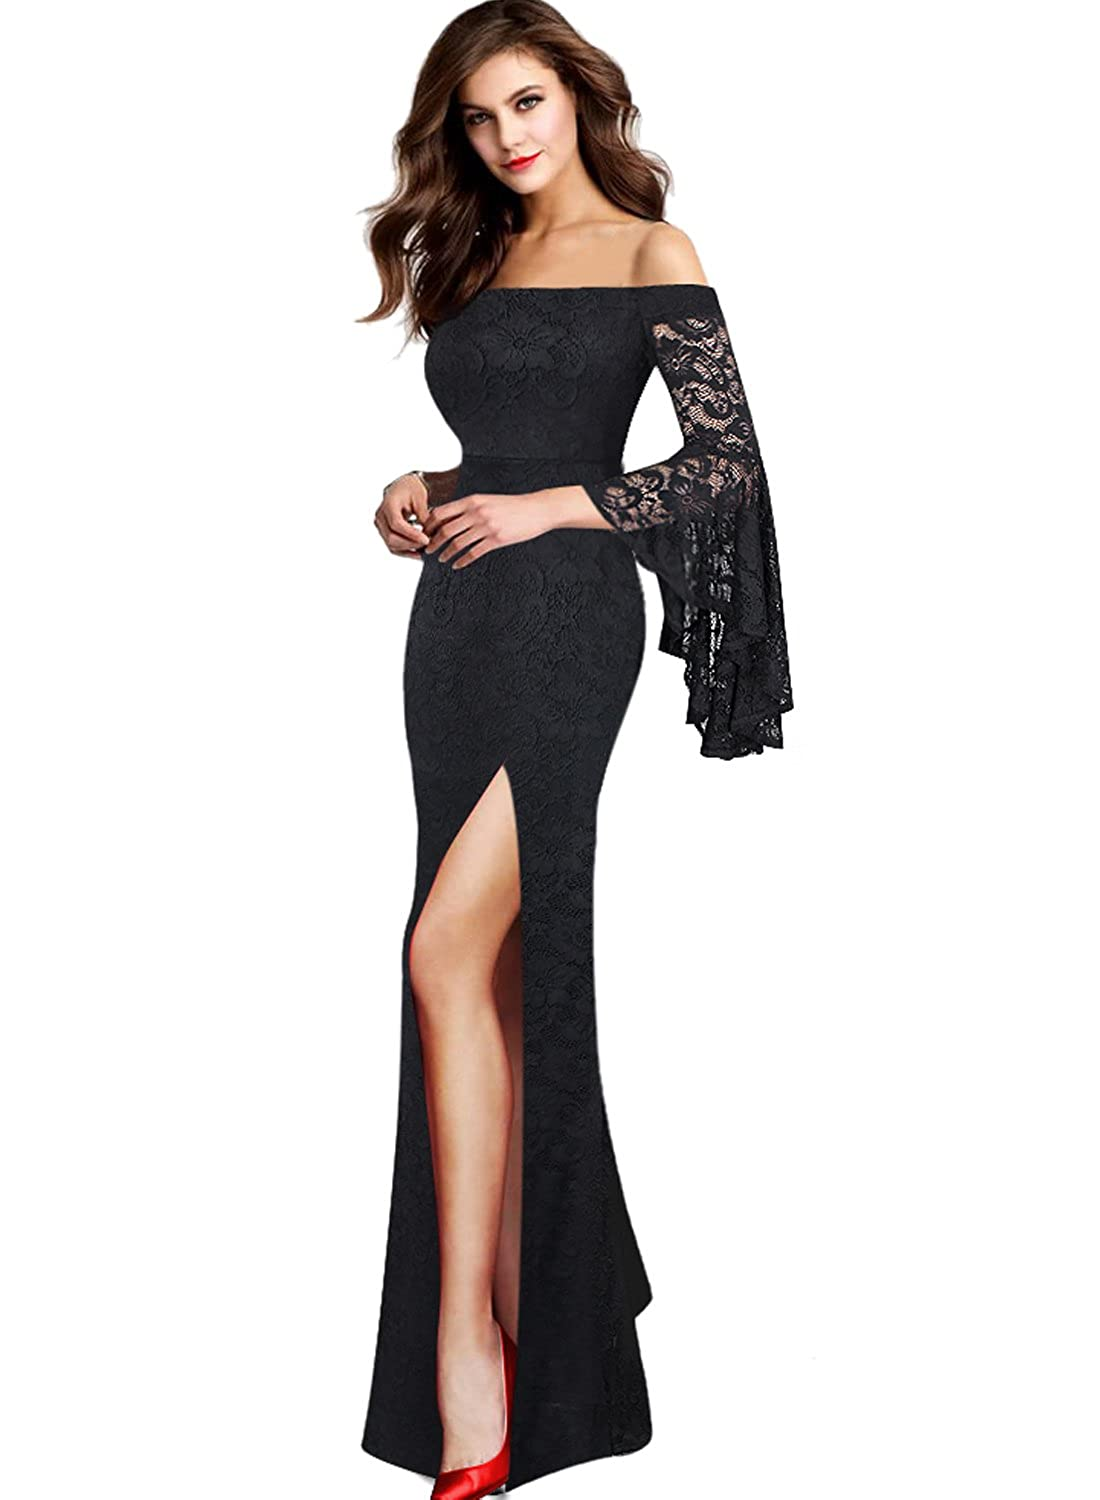 VFSHOW Womens Floral Lace Off Shoulder Bell Sleeve Formal Party Maxi Dress